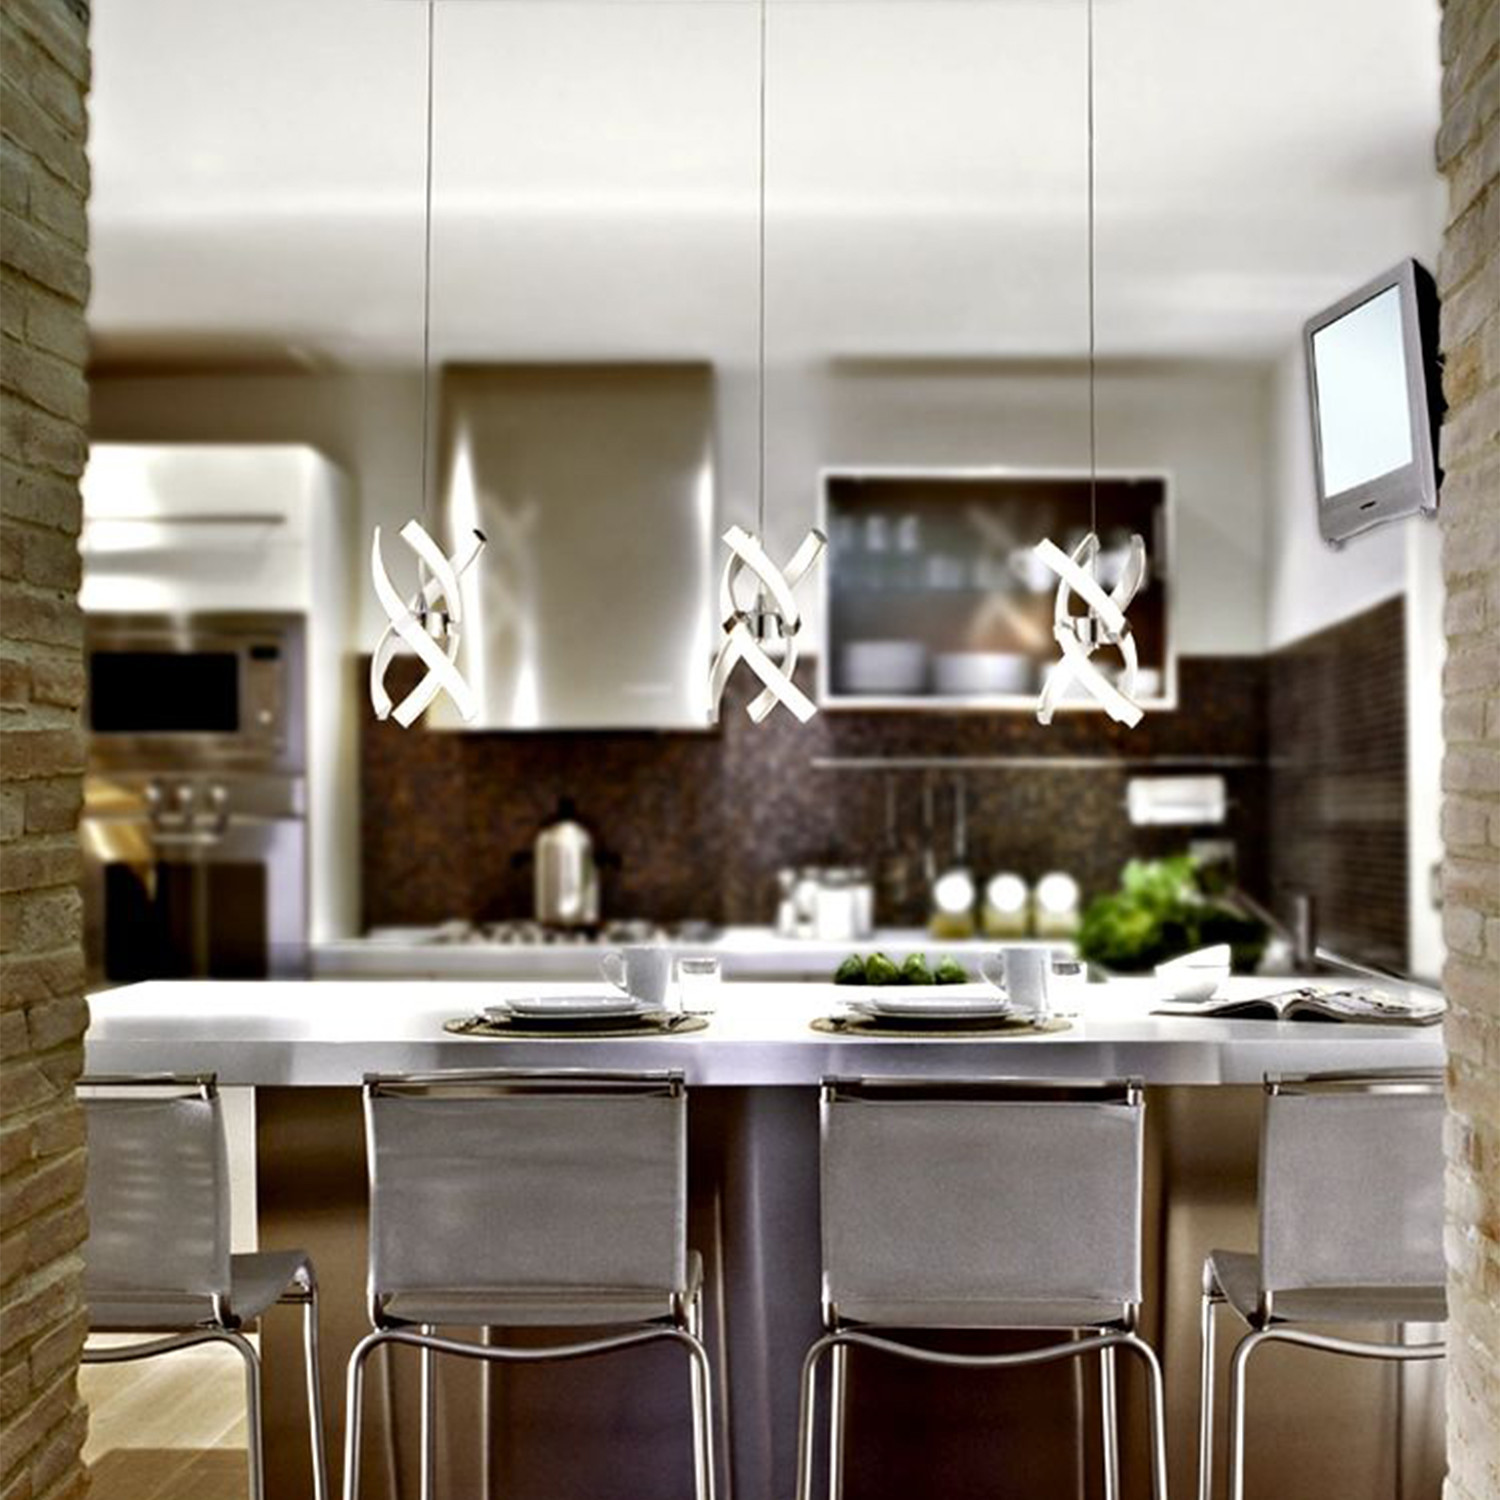 3 Light Kitchen Island Pendant Austin 3 Light Kitchen Island Pendant Contempo Lights Touch Of